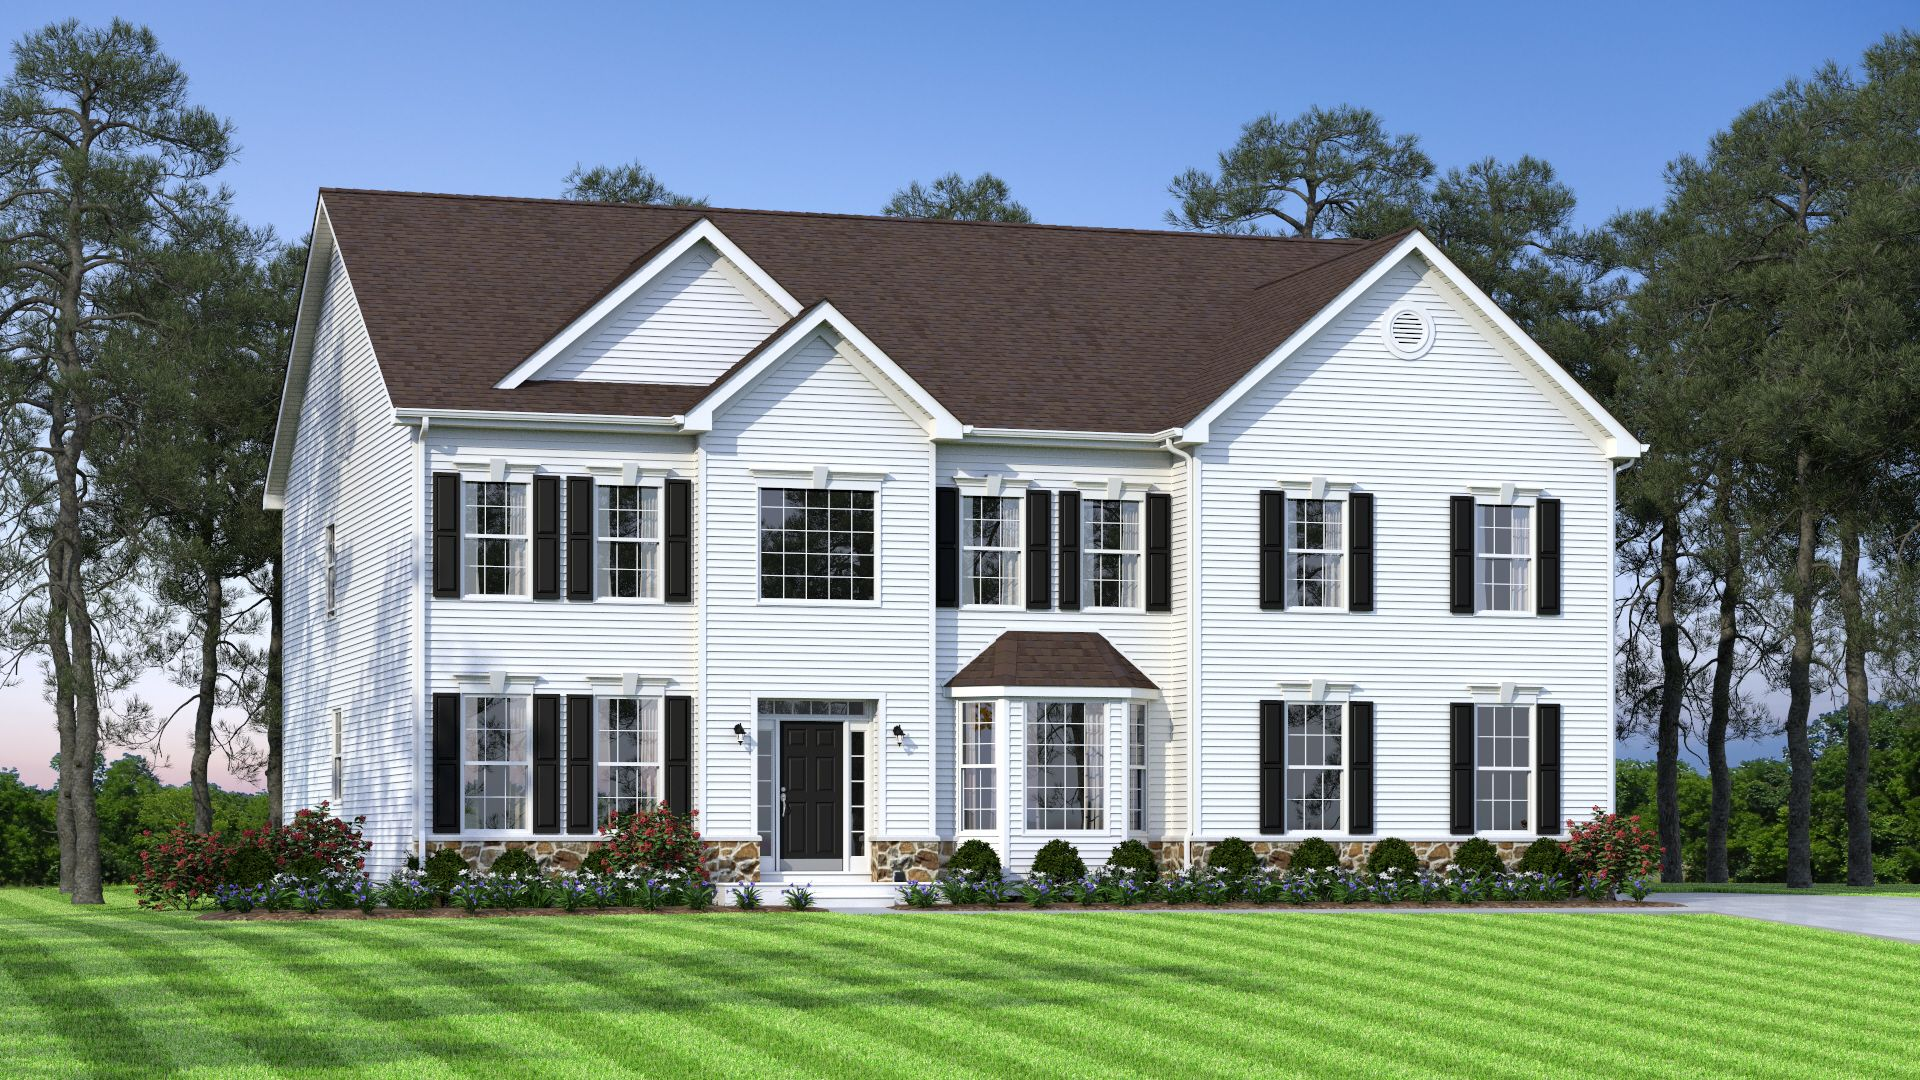 The Brandywine Elevation A:The Brandywine Elevation A